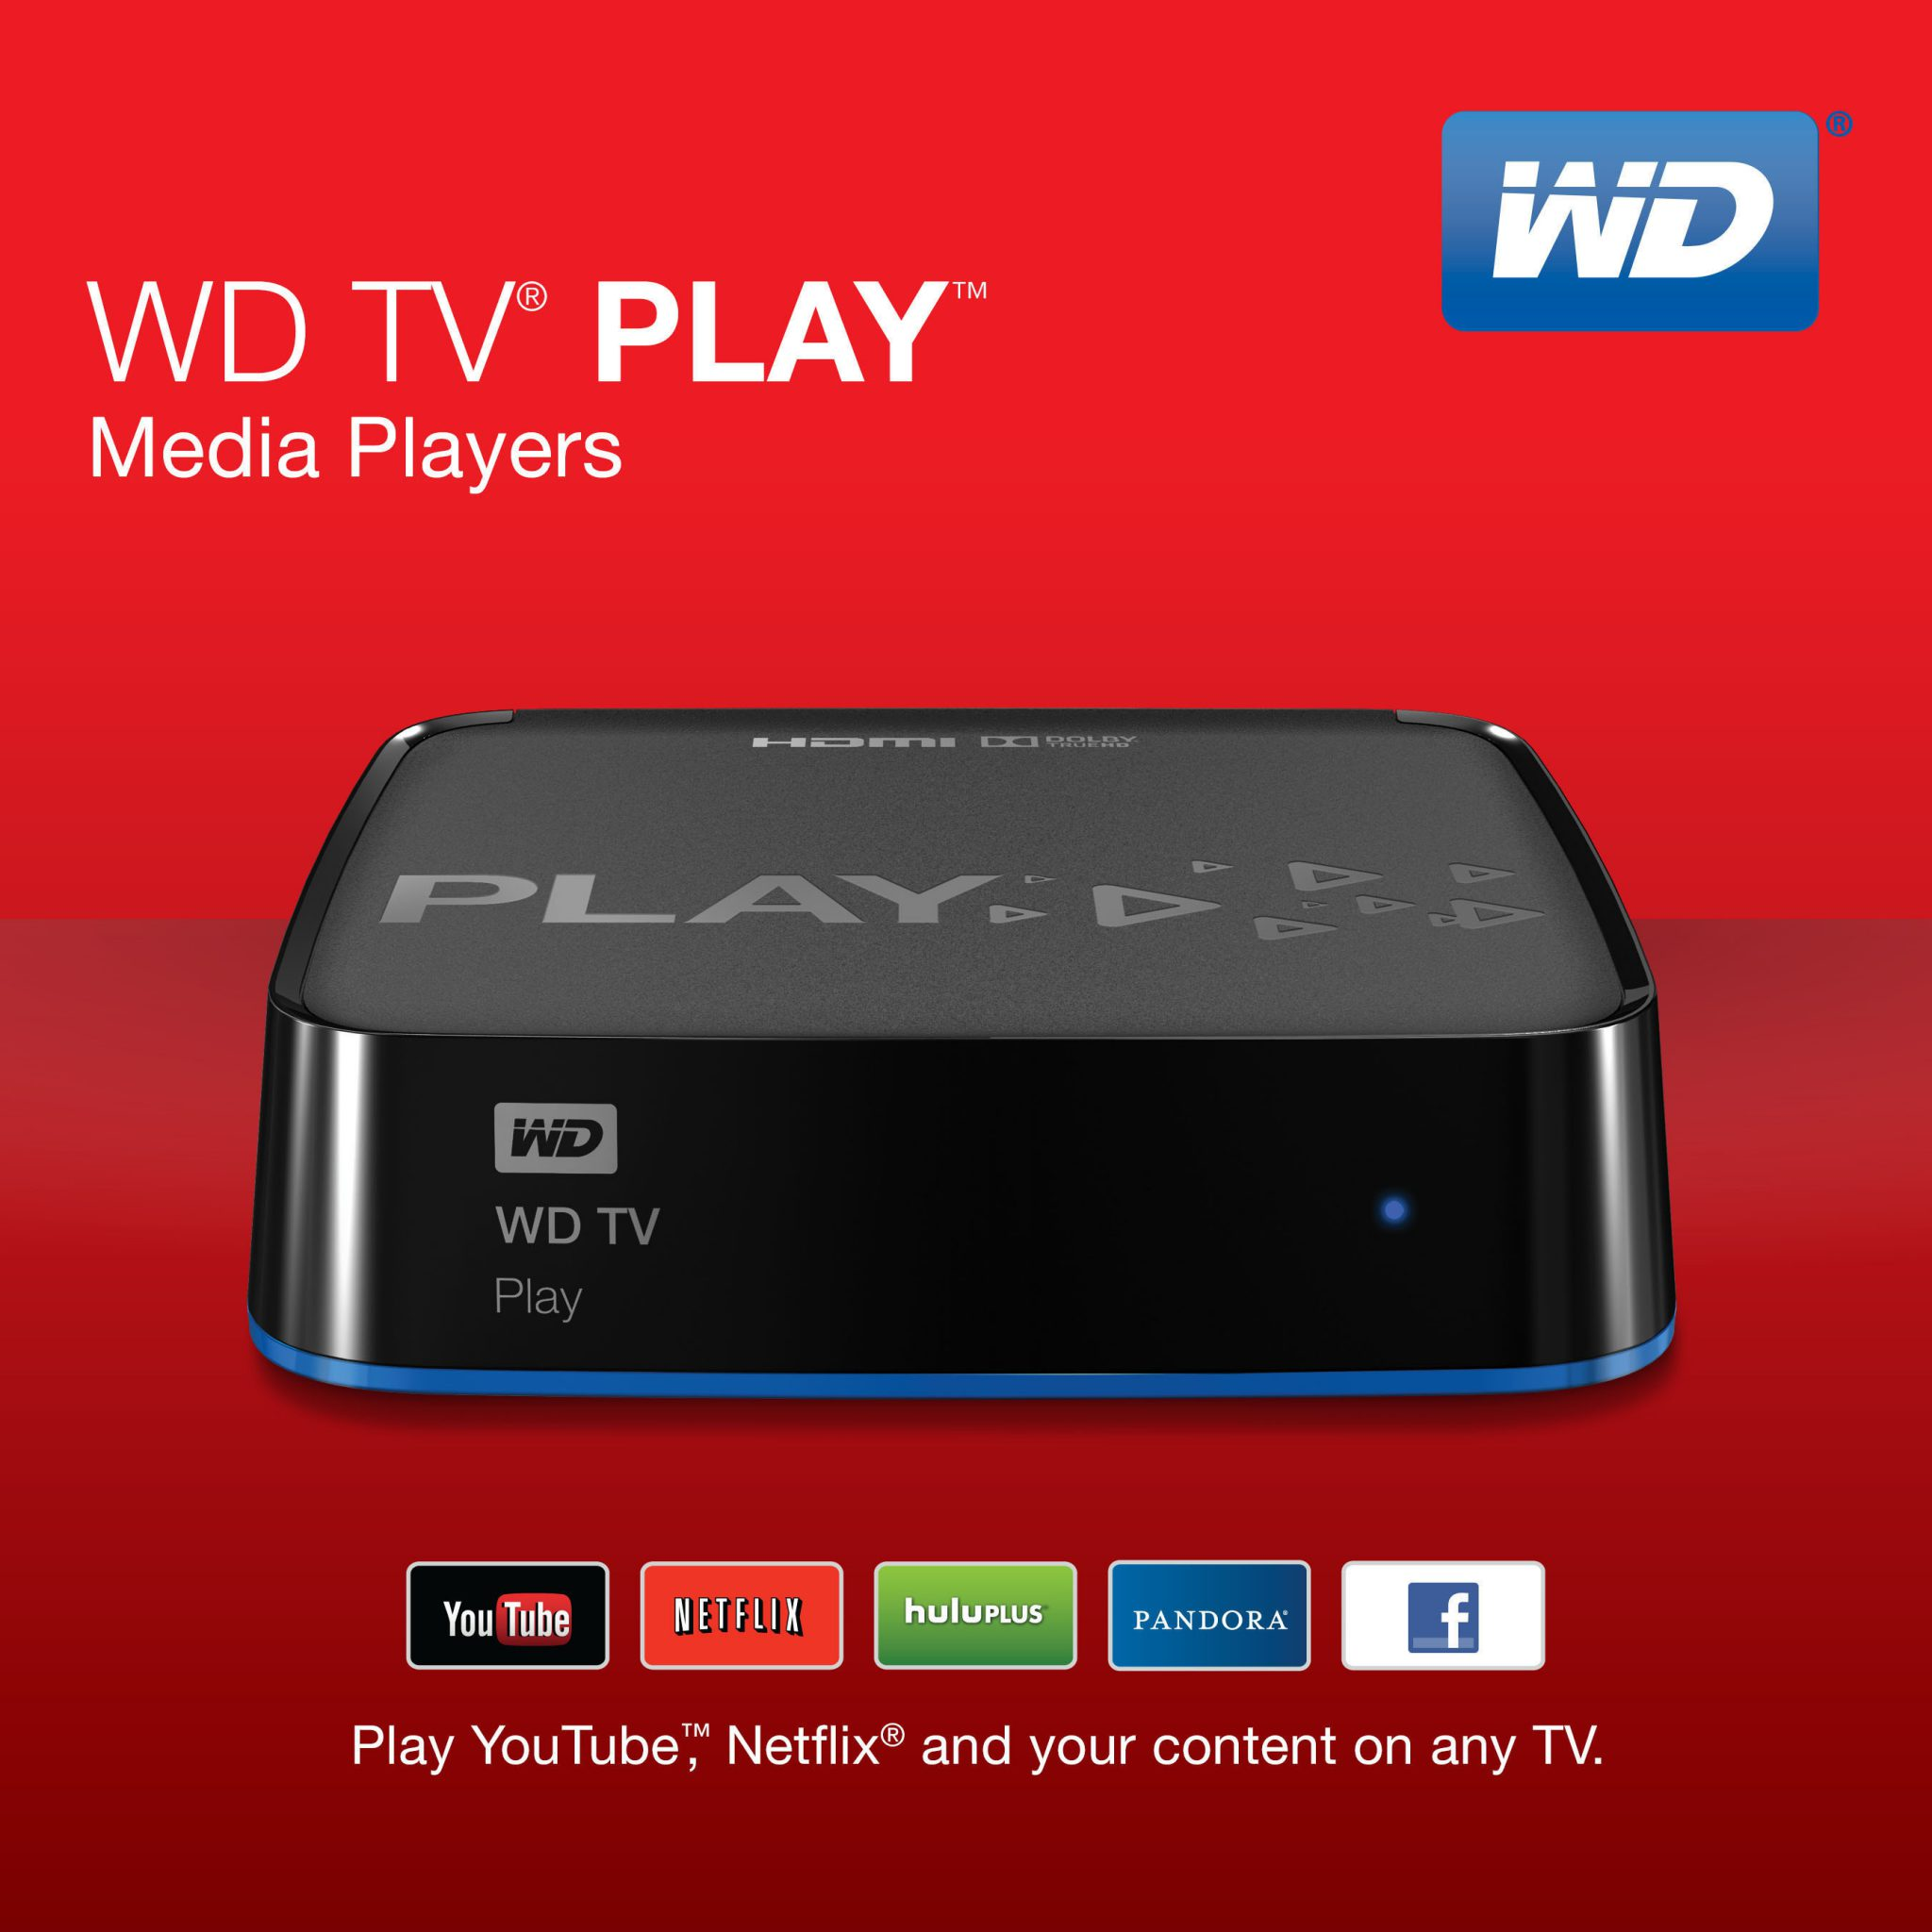 WD VERSATILE MEDIA PLAYER